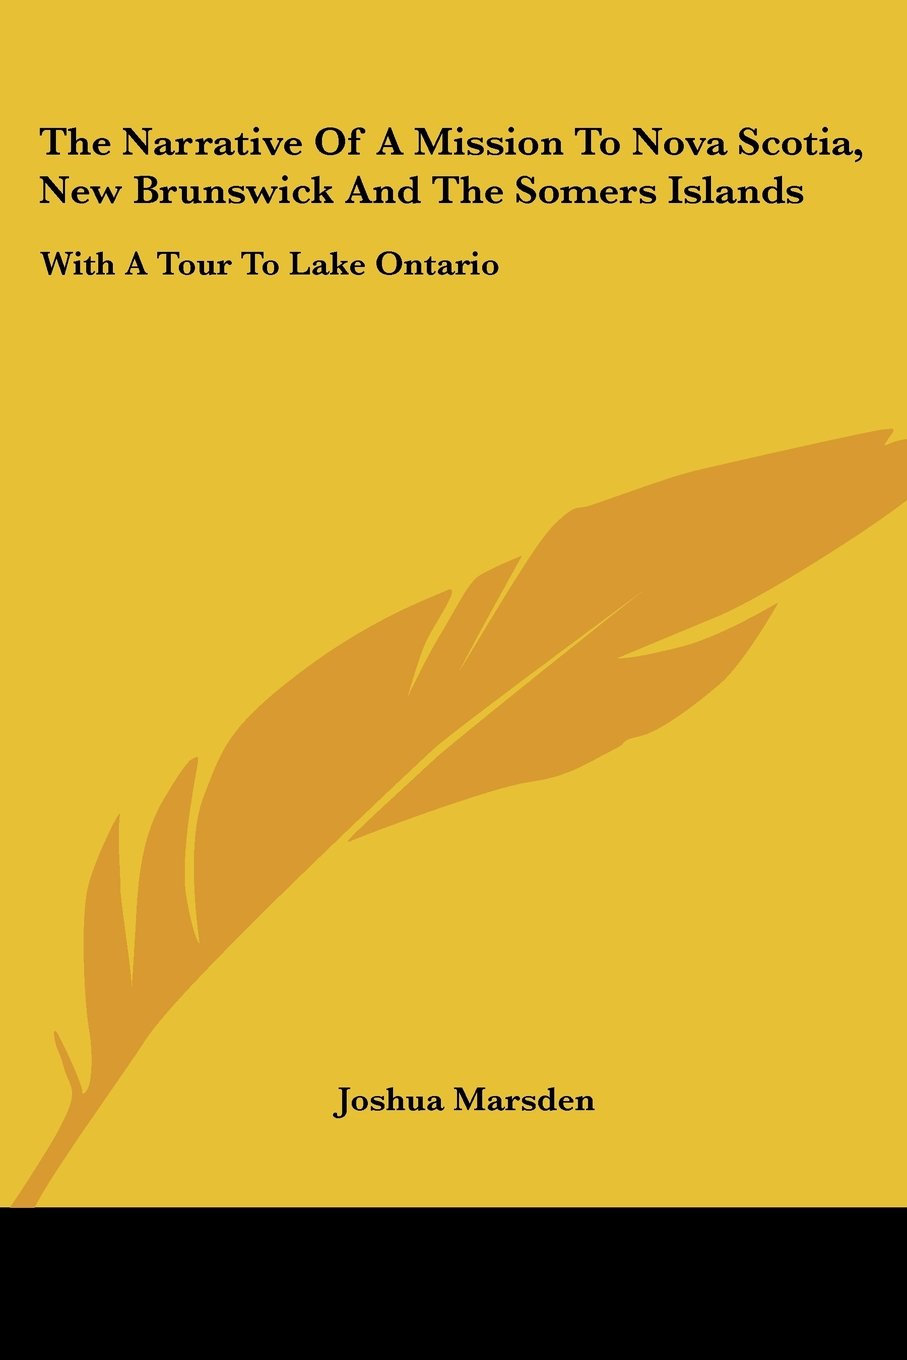 The Narrative of a Mission to Nova Scotia, New Brunswick and the Somers Islands: With a Tour to Lake Ontario